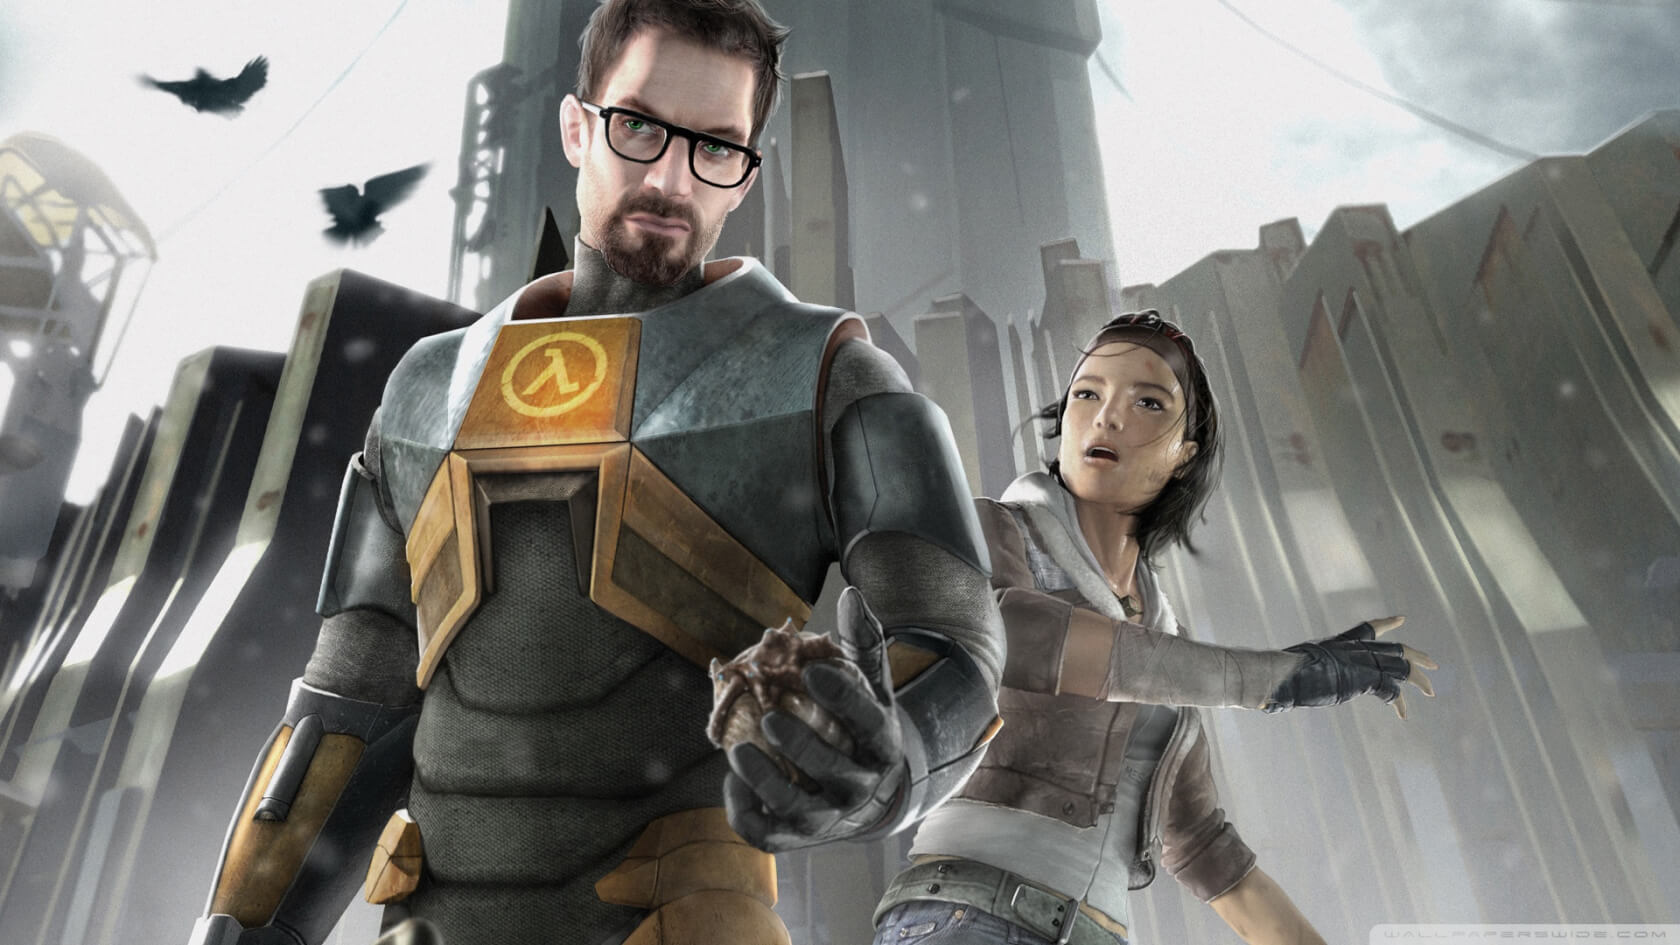 Half-Life 3 was one of many projects Valve canceled over the last decade